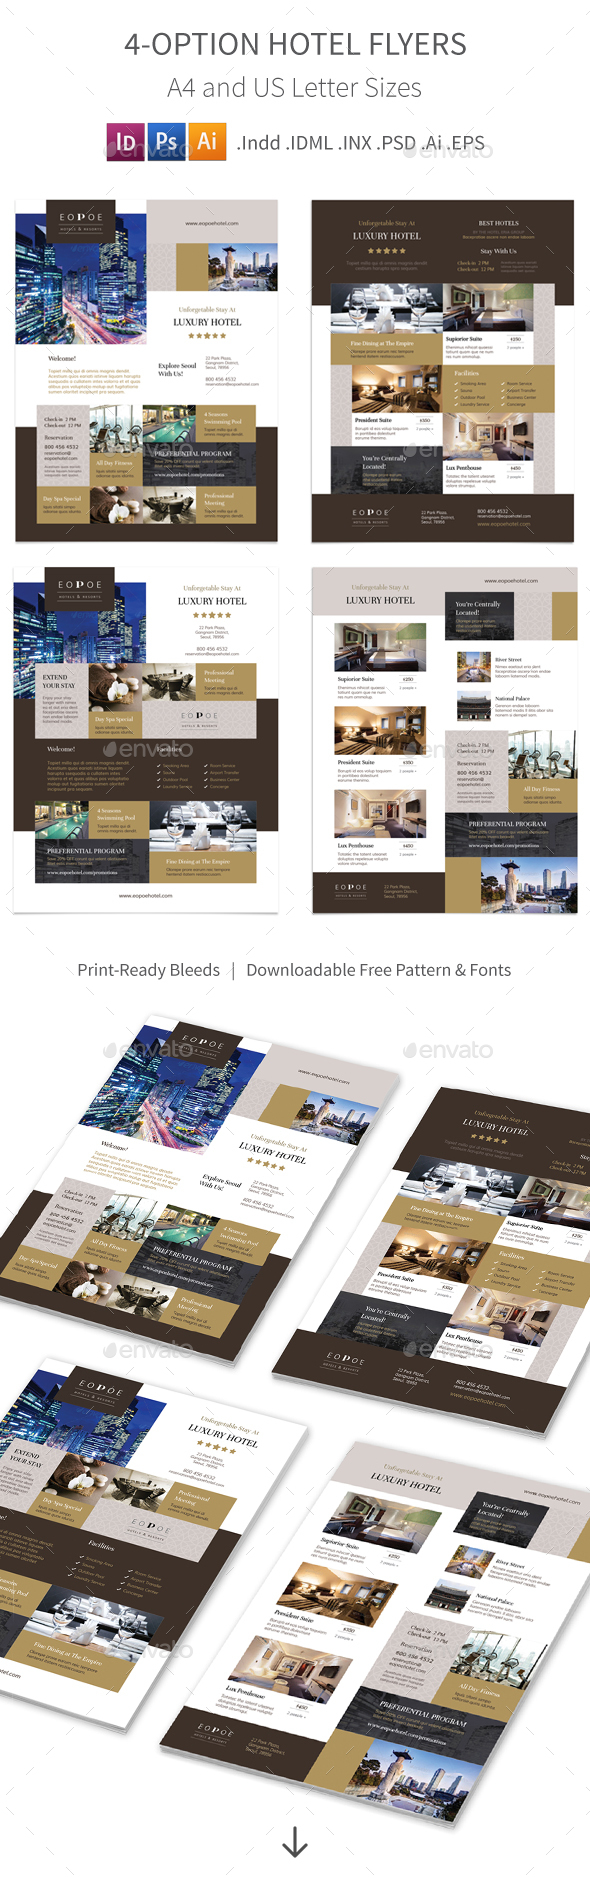 Hotel Flyers 5 – 4 Options - Corporate Flyers